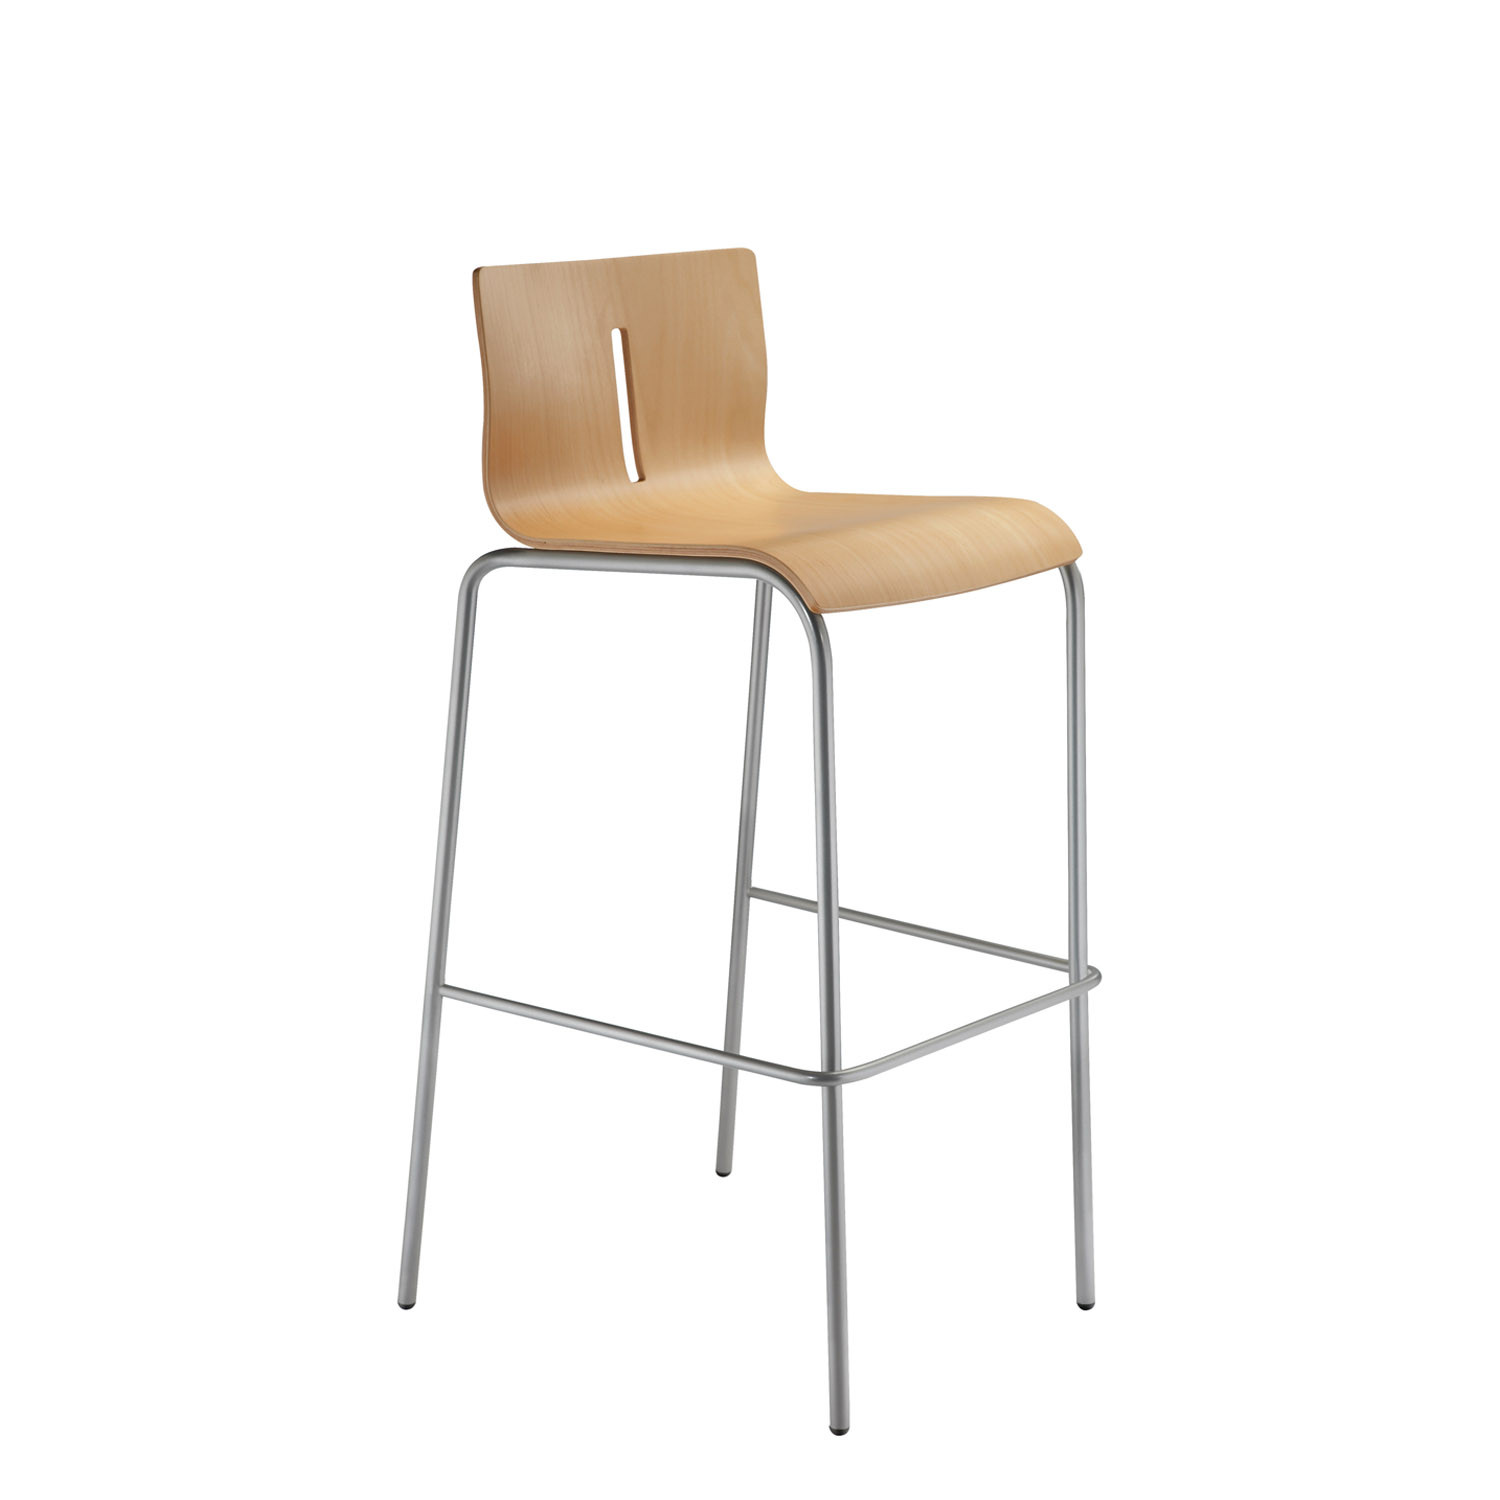 Mocha Bar Stool - Beeck Plywood